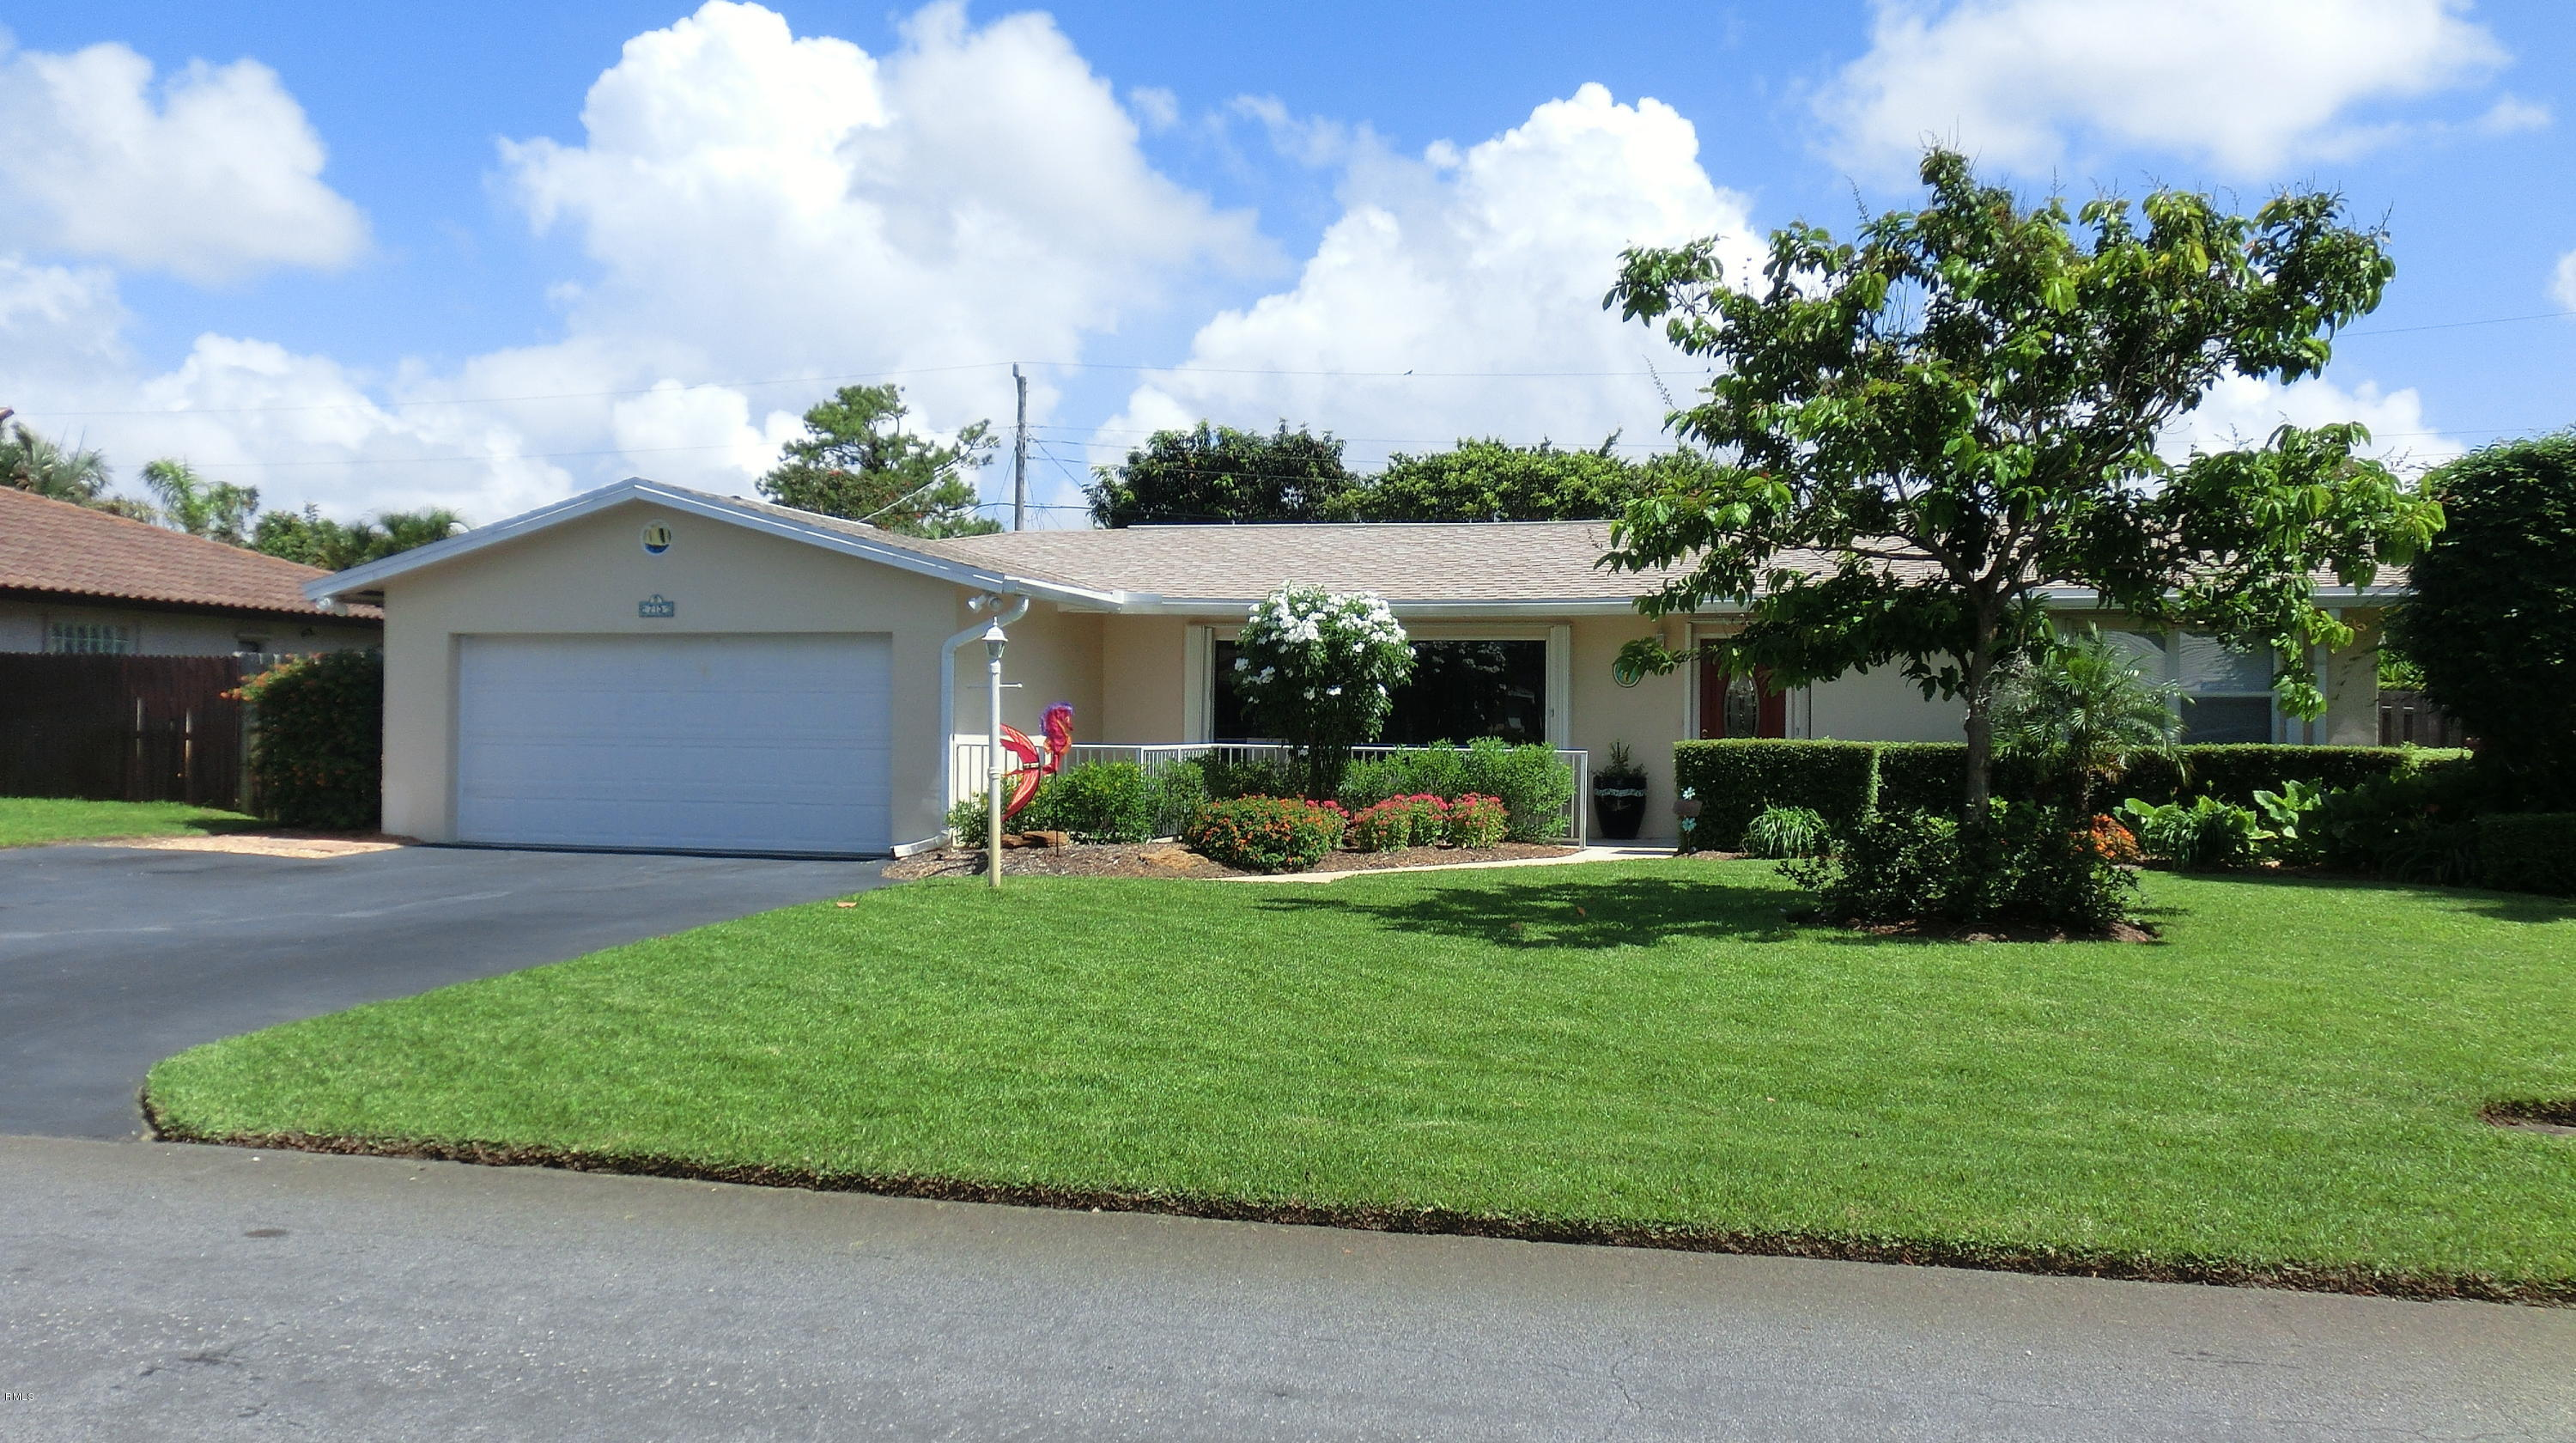 715 Sw 27th Way, Boynton Beach, FL 33435